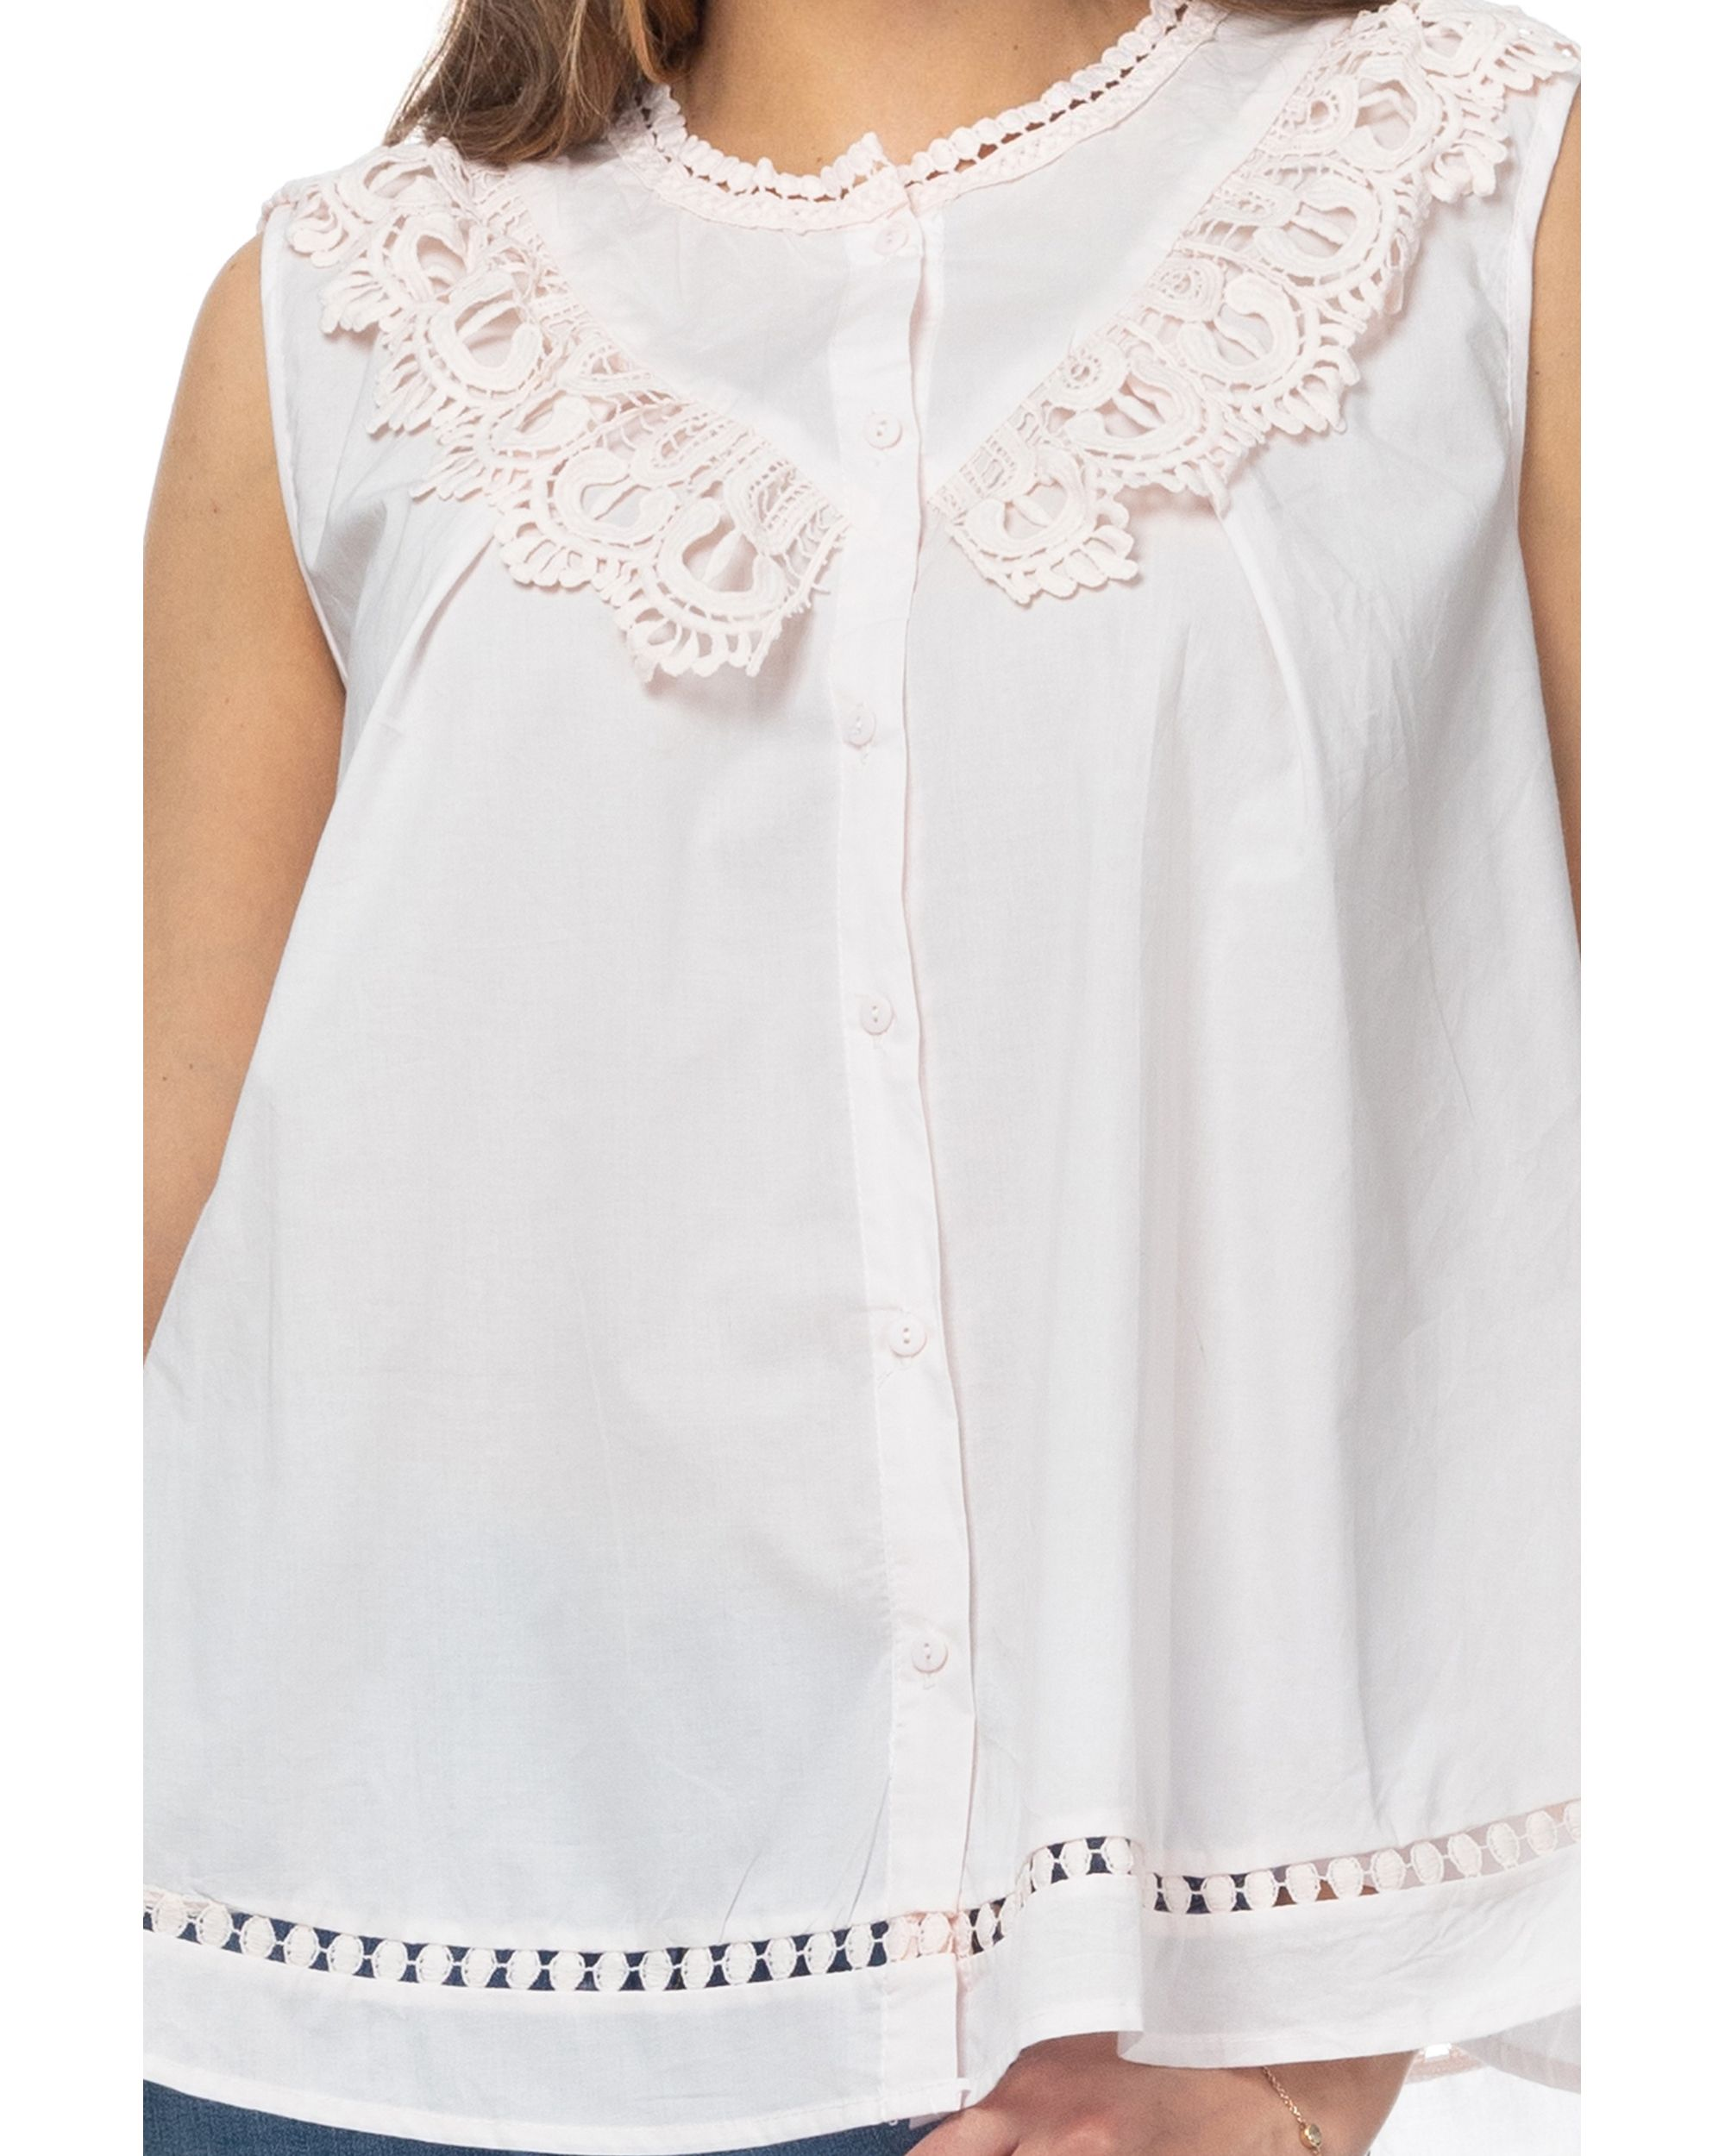 Flared Blouse With Lace And Vainica Details